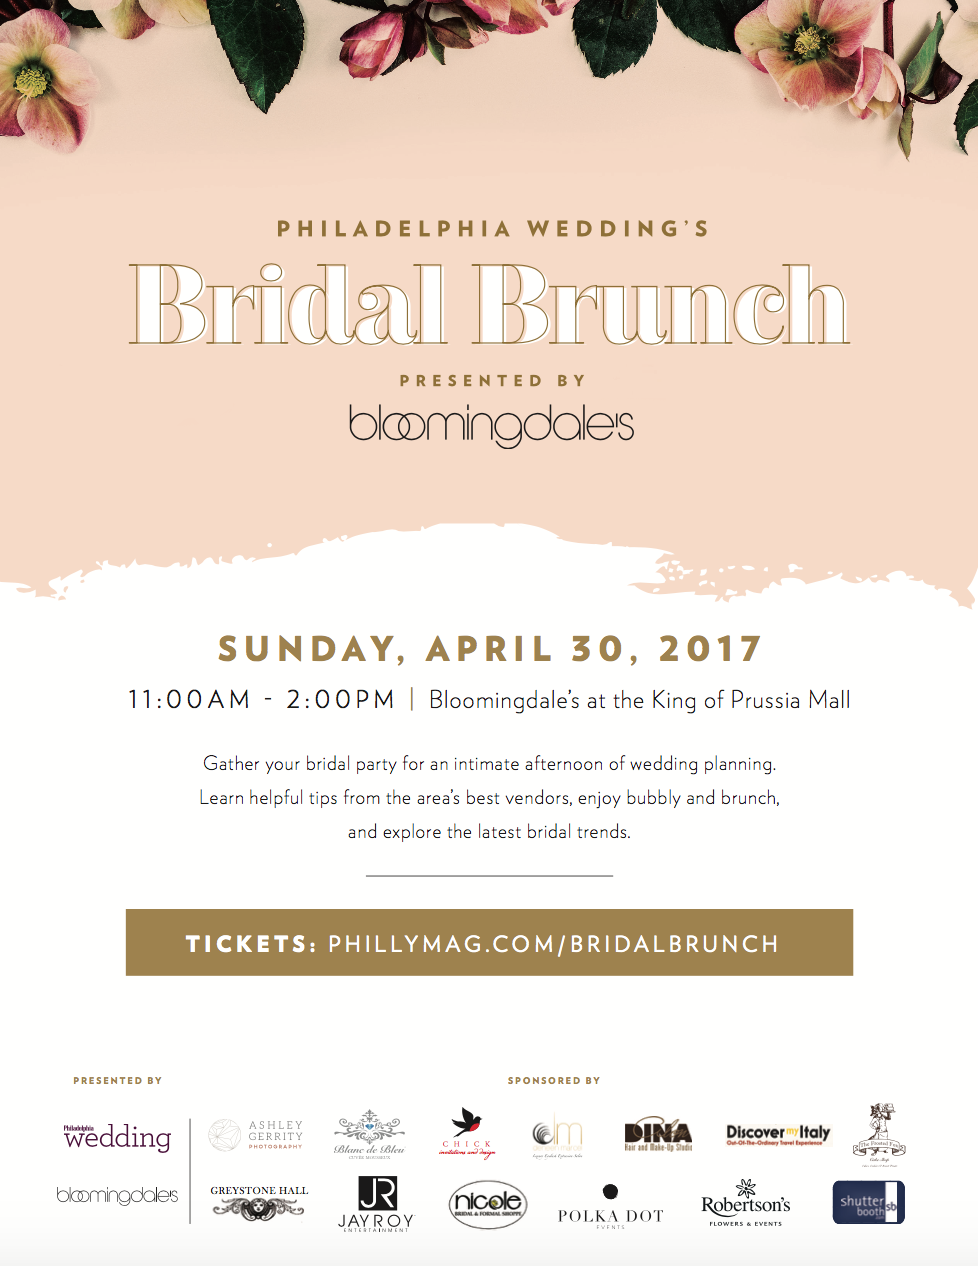 philly bridal brunch